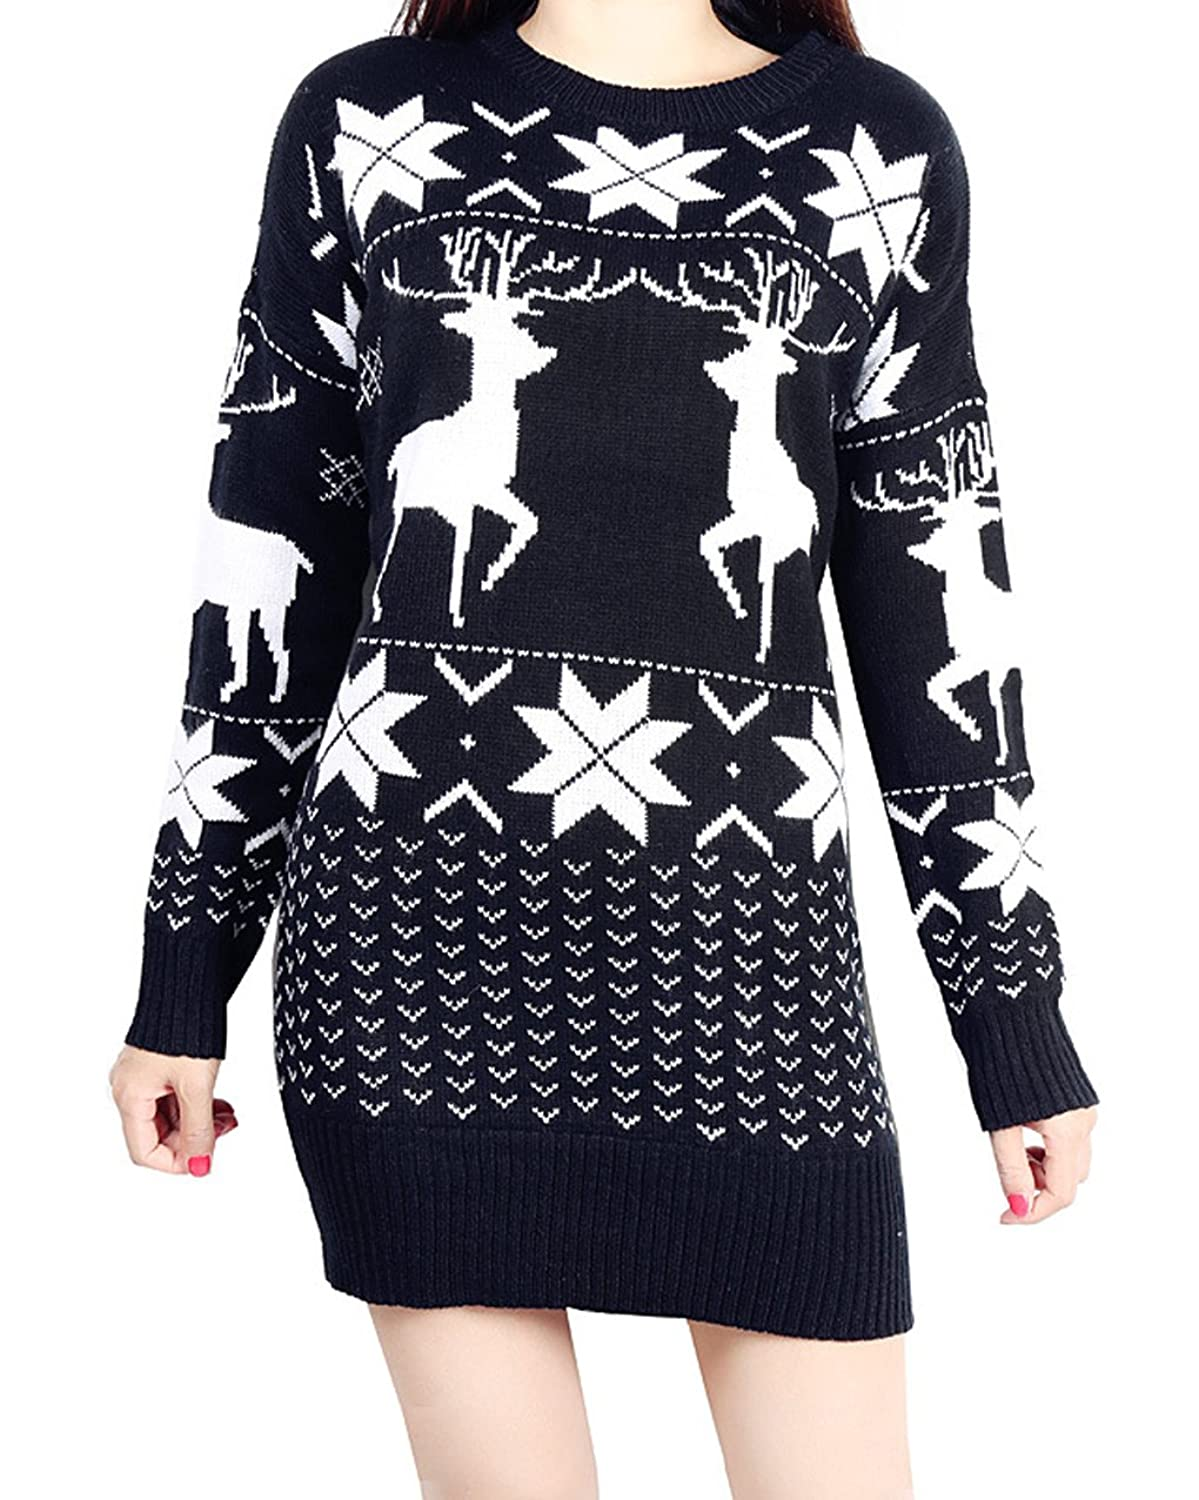 Vogue of Eden Women's Oversized Christmas Deer and Maple Leaves Knitted Sweater